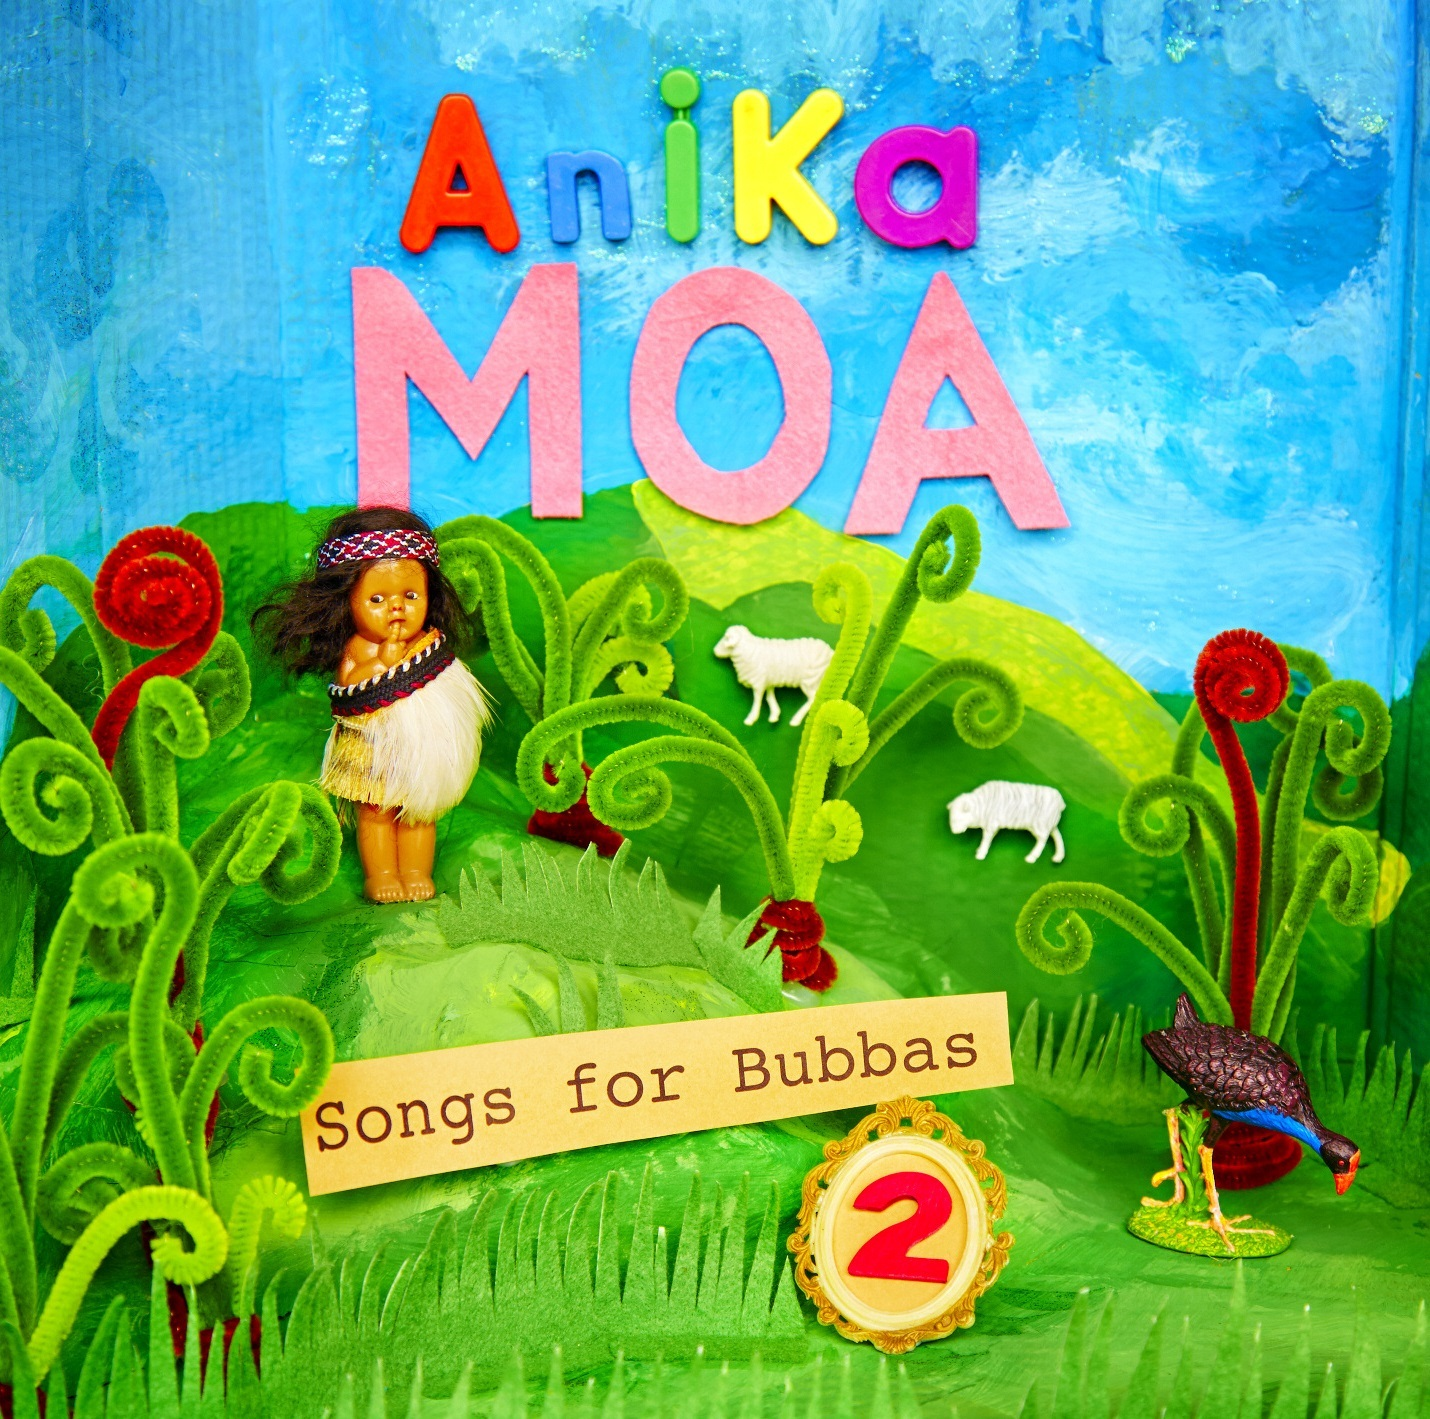 Songs For Bubbas Vol 2 by Anika Moa image